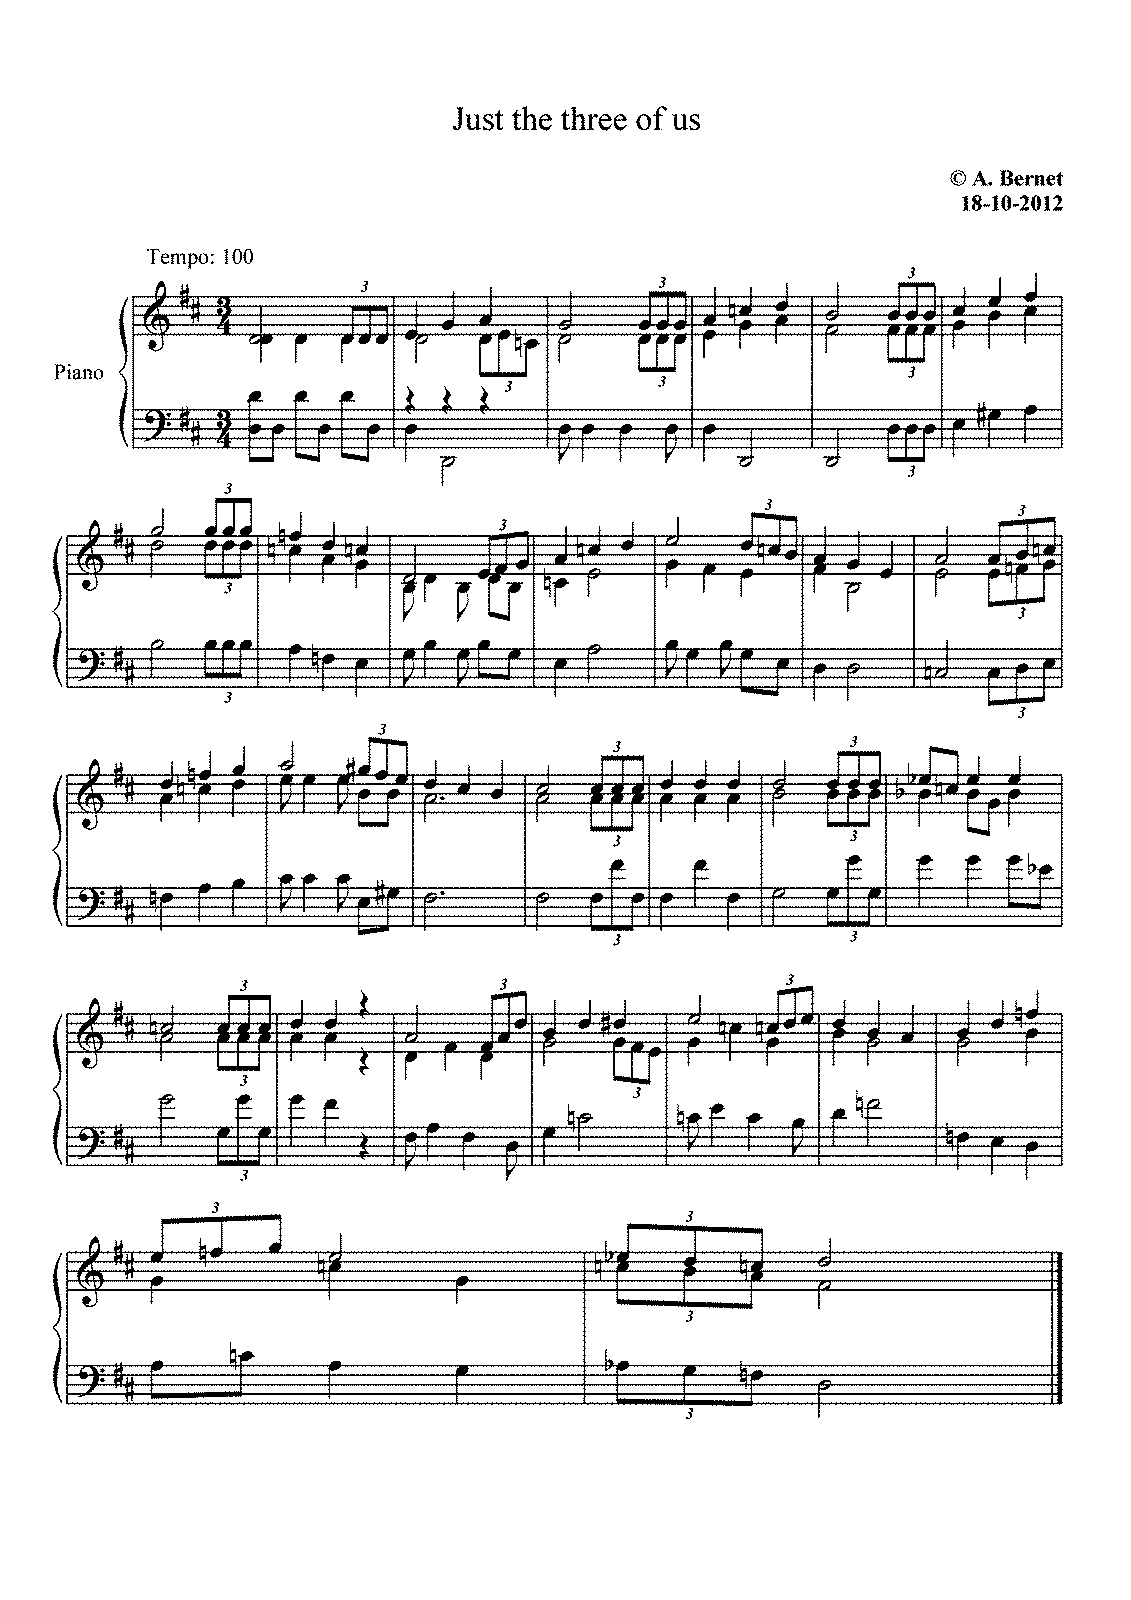 Just the Three of Us (Bernet, Atie) - IMSLP/Petrucci Music Library